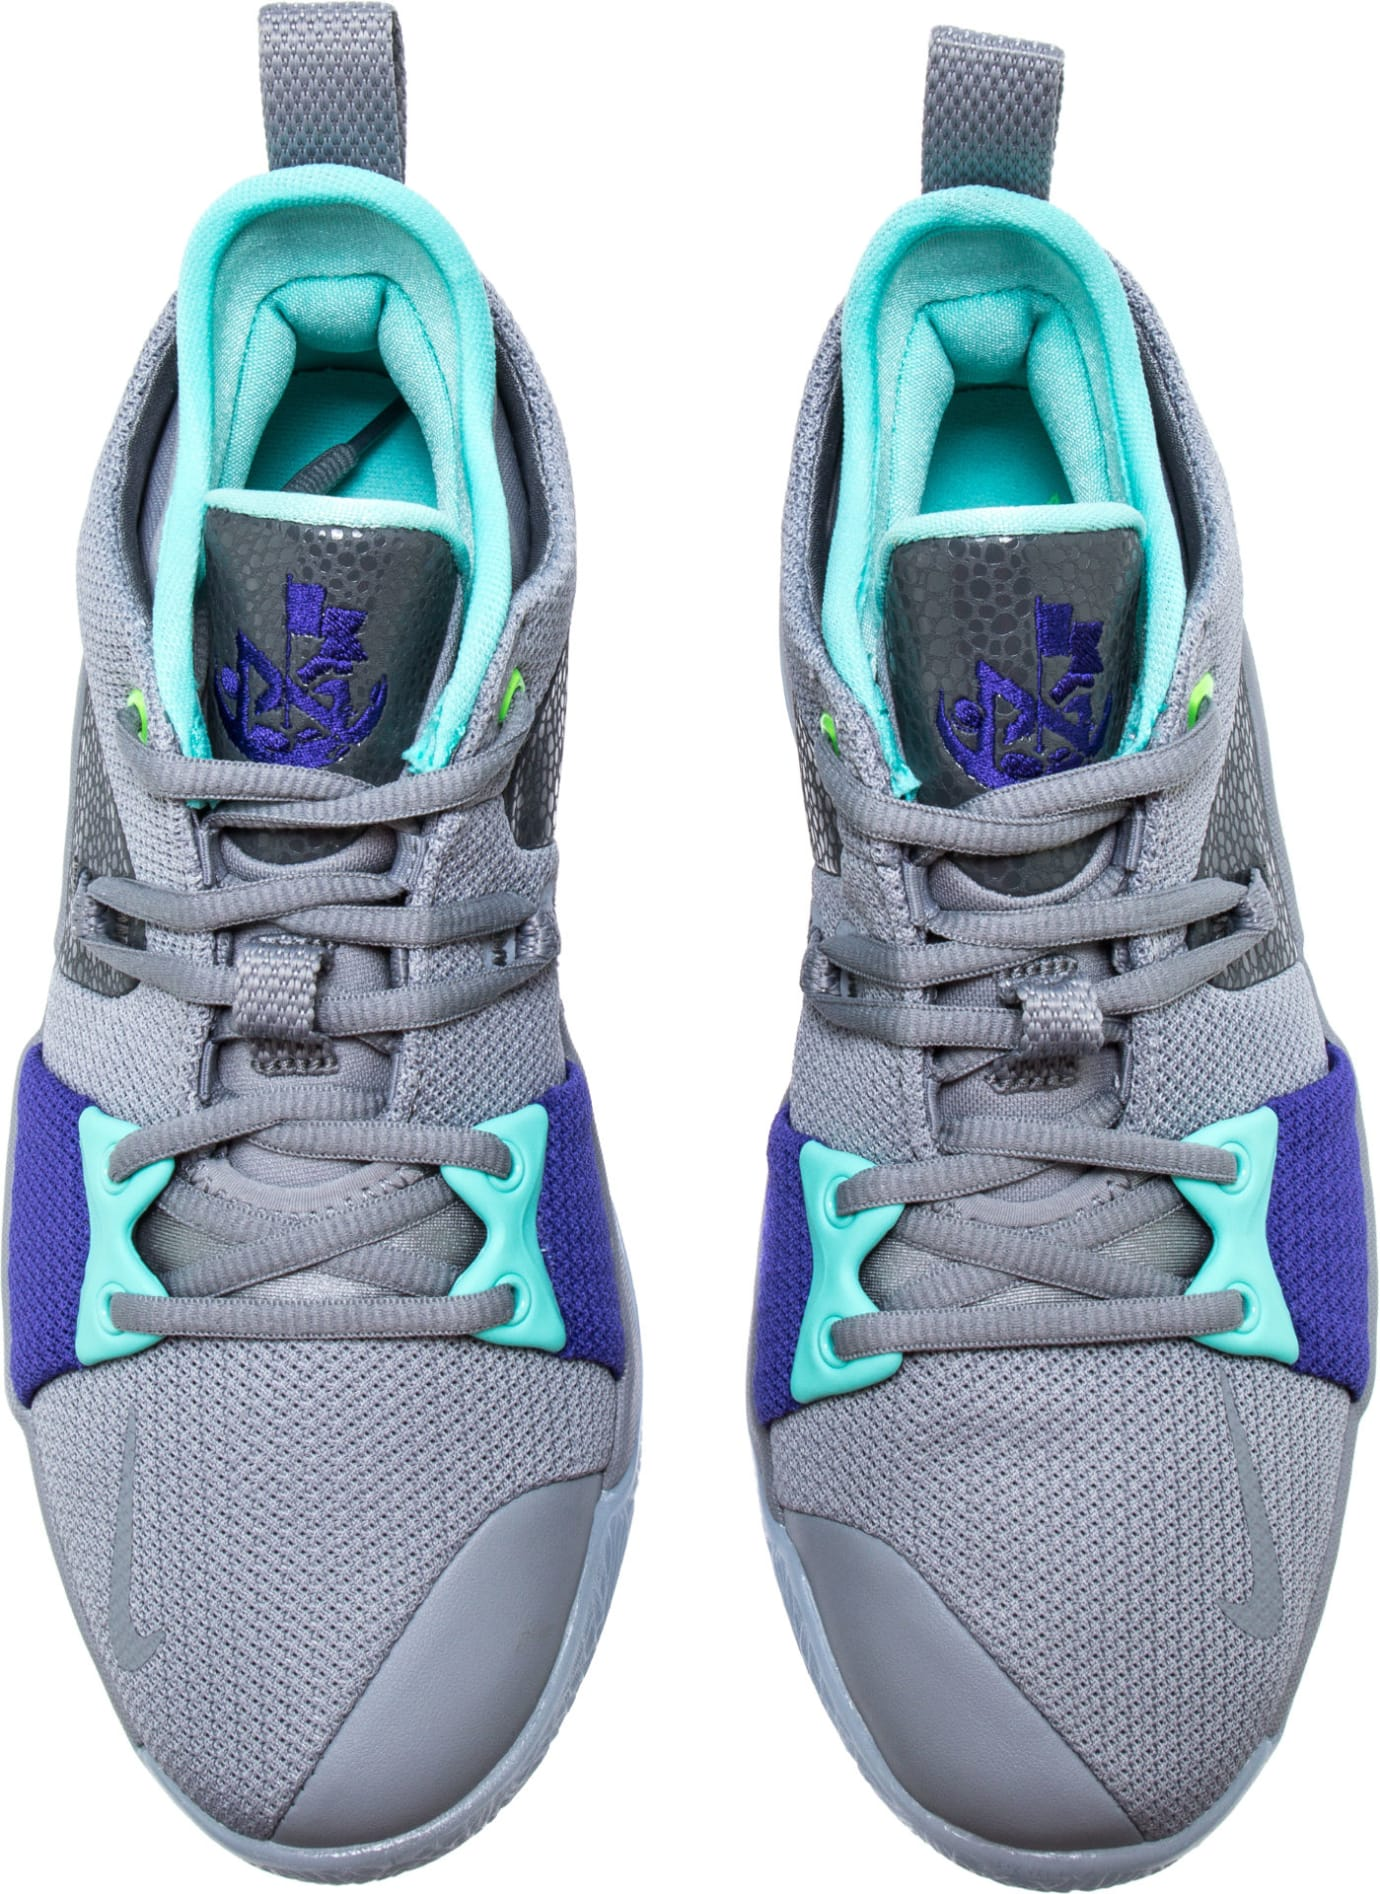 90507688f52 Nike PG2 Pure Platinum Neo Turquoise Wolf Grey Aurora Green Release Date  AJ2039-002 Top